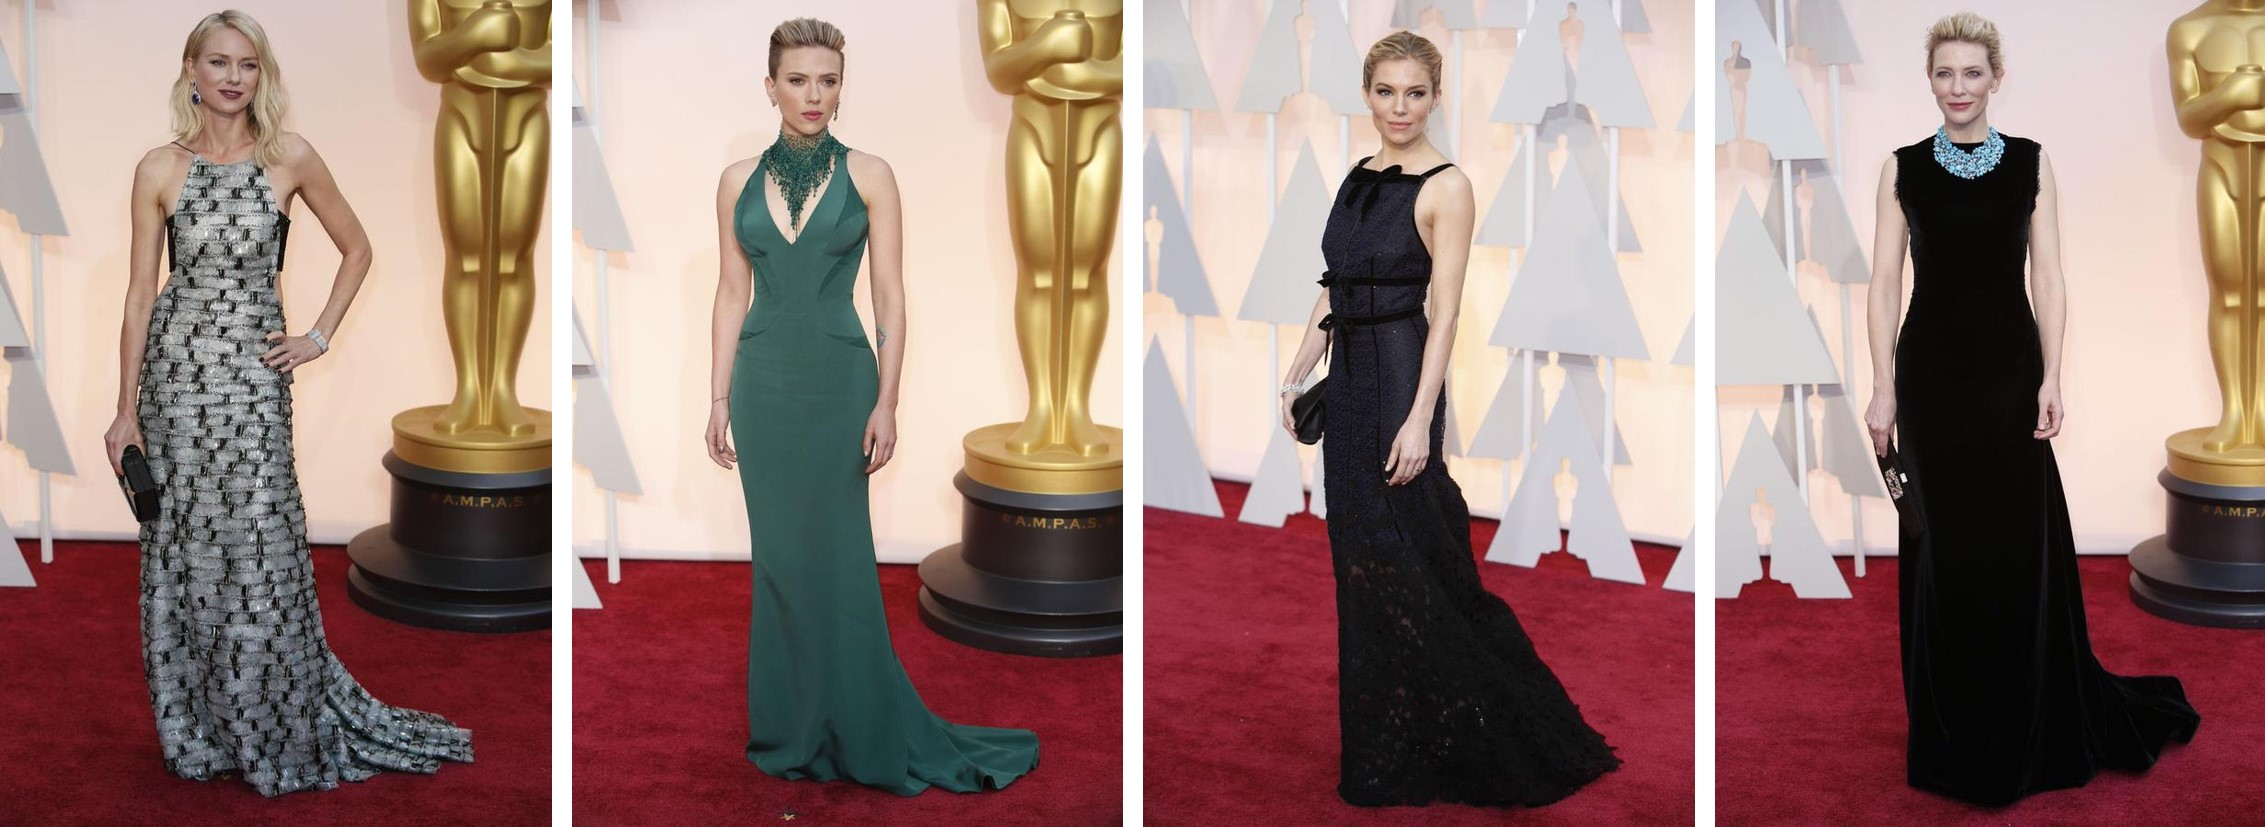 OSCARS 2015 - remettantes red carpet - Go with the Blog